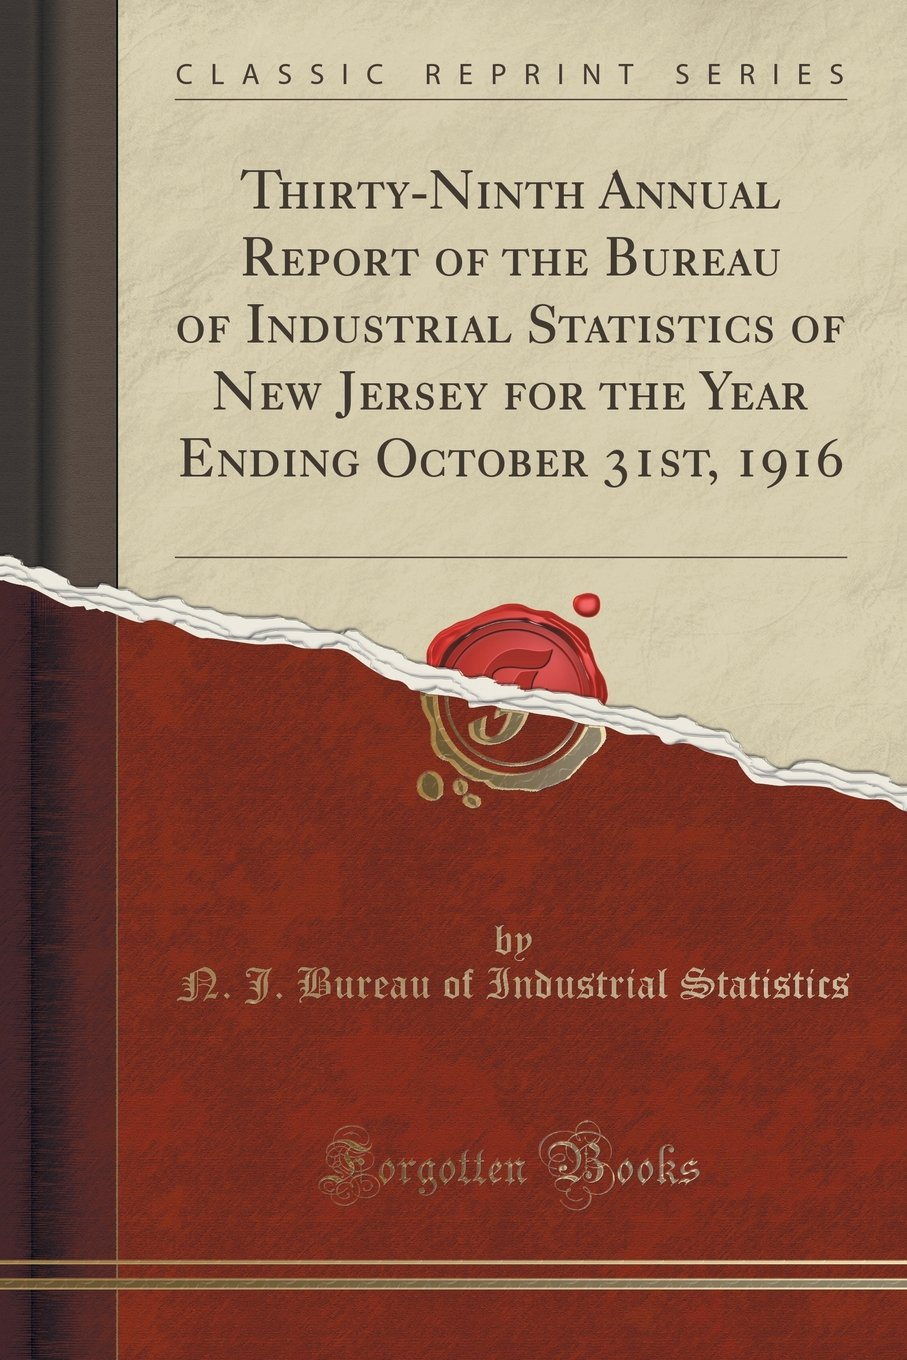 Thirty-Ninth Annual Report of the Bureau of Industrial Statistics of New Jersey for the Year Ending October 31st, 1916 (Classic Reprint) PDF ePub book